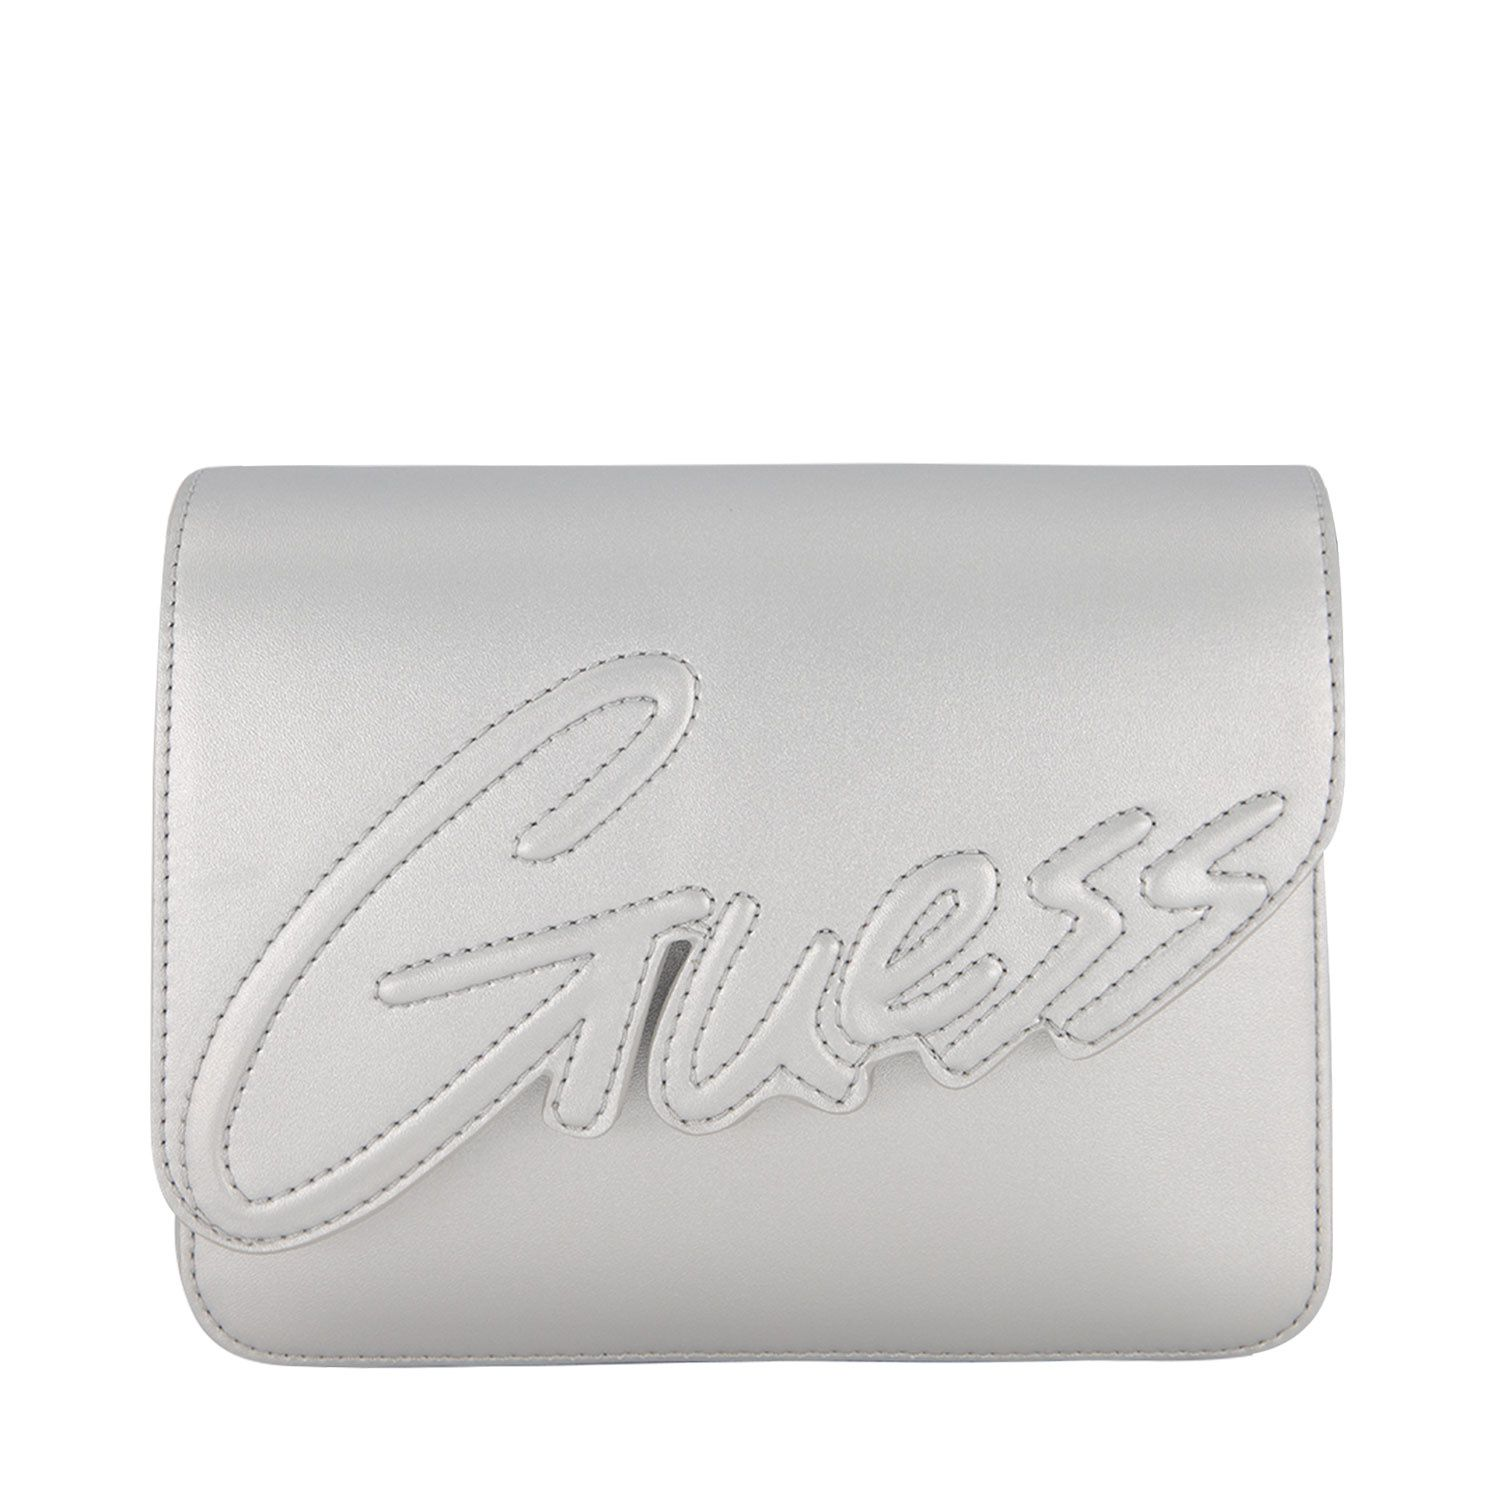 Picture of Guess HGIVY2 PU213 kids bag silver